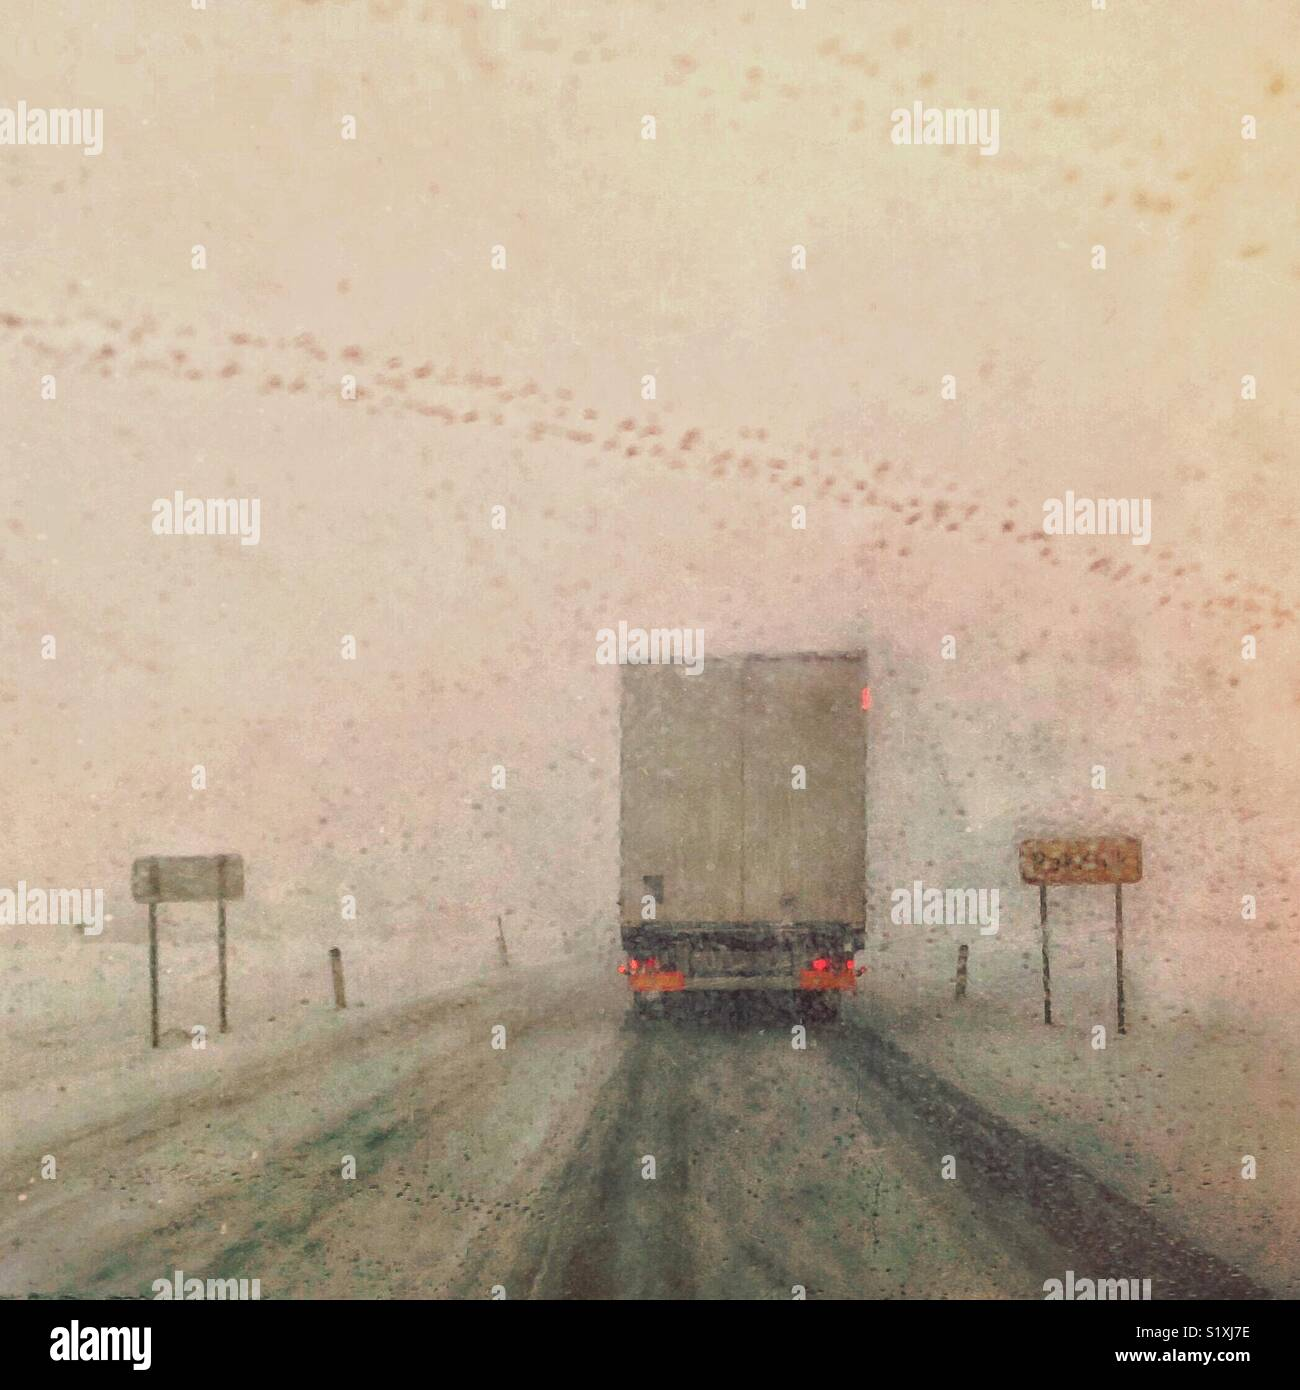 Car driving in heavy snow. A front window view of bad weather conditions - Stock Image